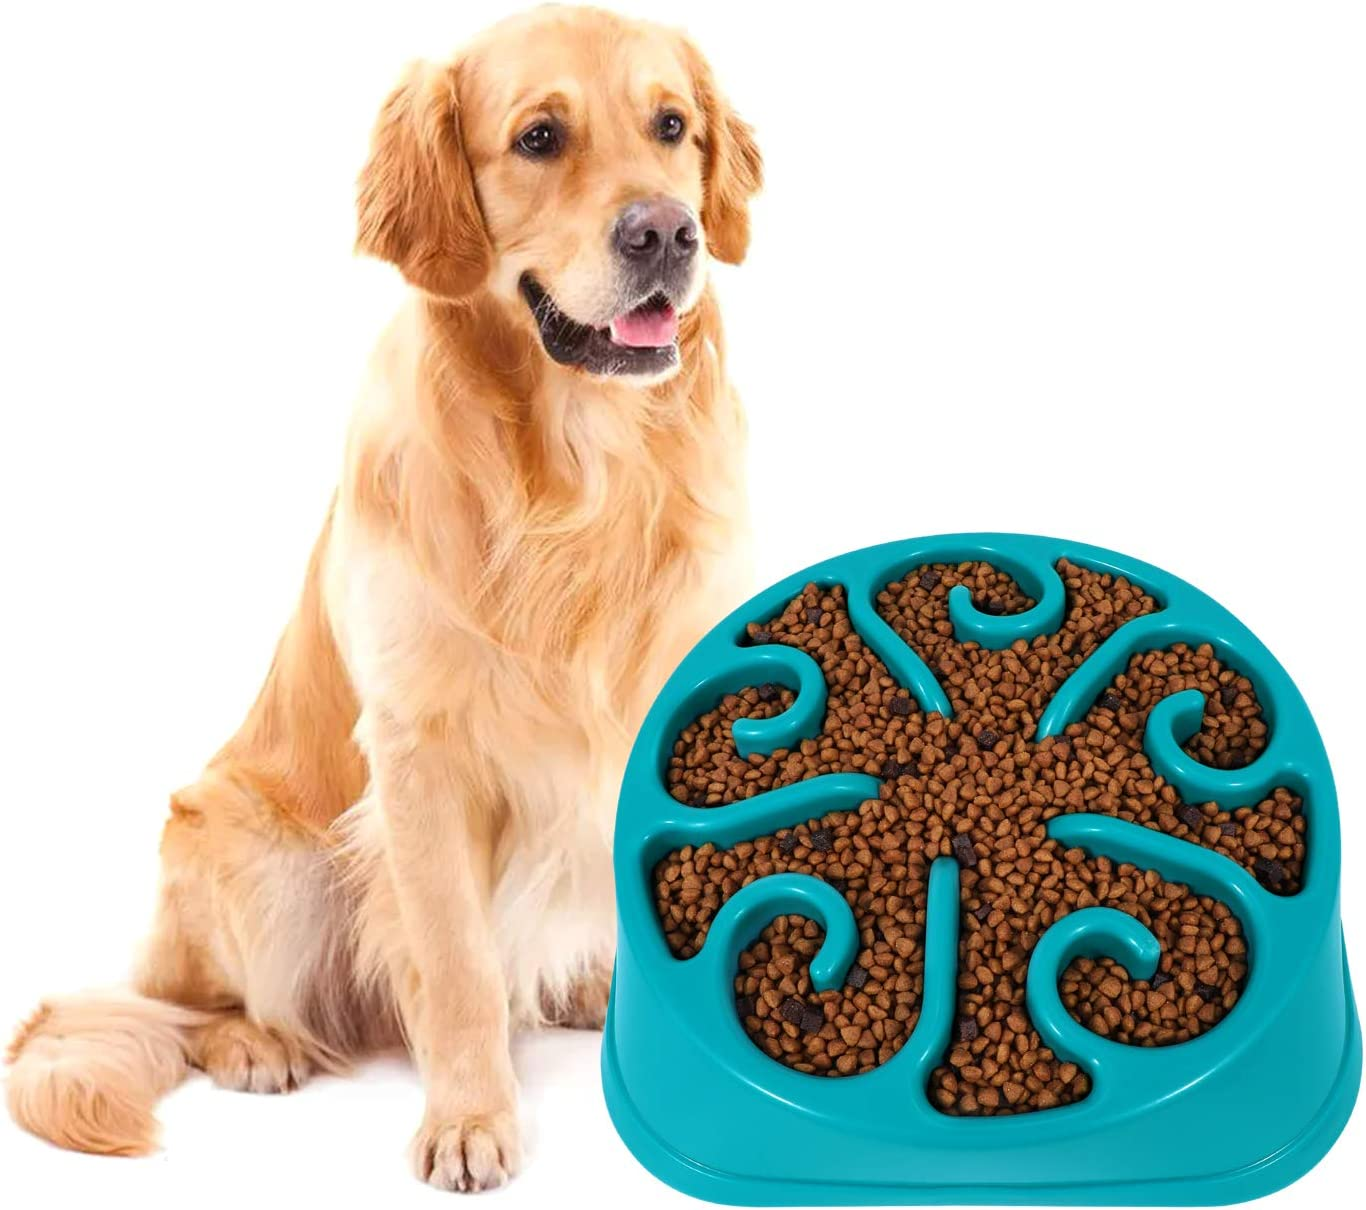 KASBAH Slow Feeder Dog Bowl for Large Dogs, Anti-Gulping Dog Food Bowls Non-Toxic Eco Friendly Maze Dog Bowl for Big Dogs, Blue